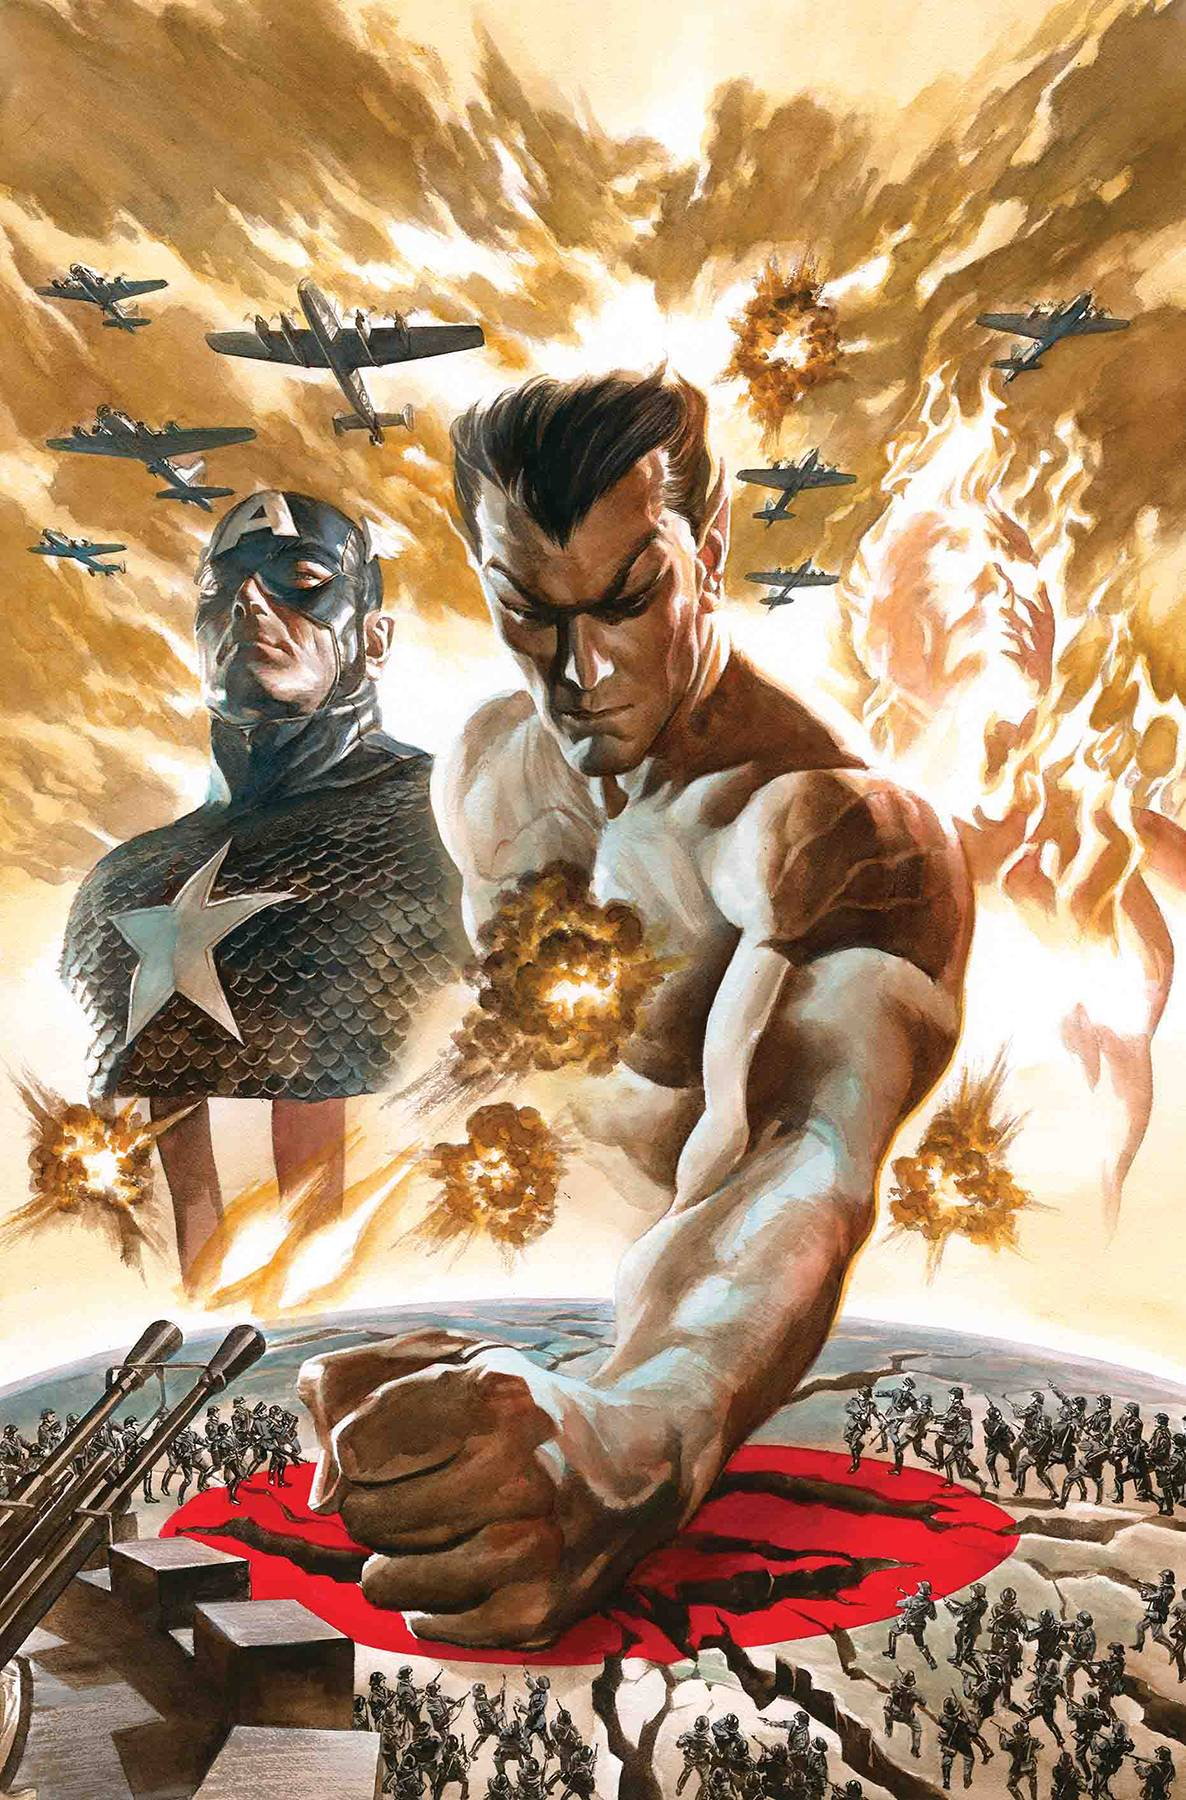 INVADERS 1 BY ALEX ROSS POSTER.jpg